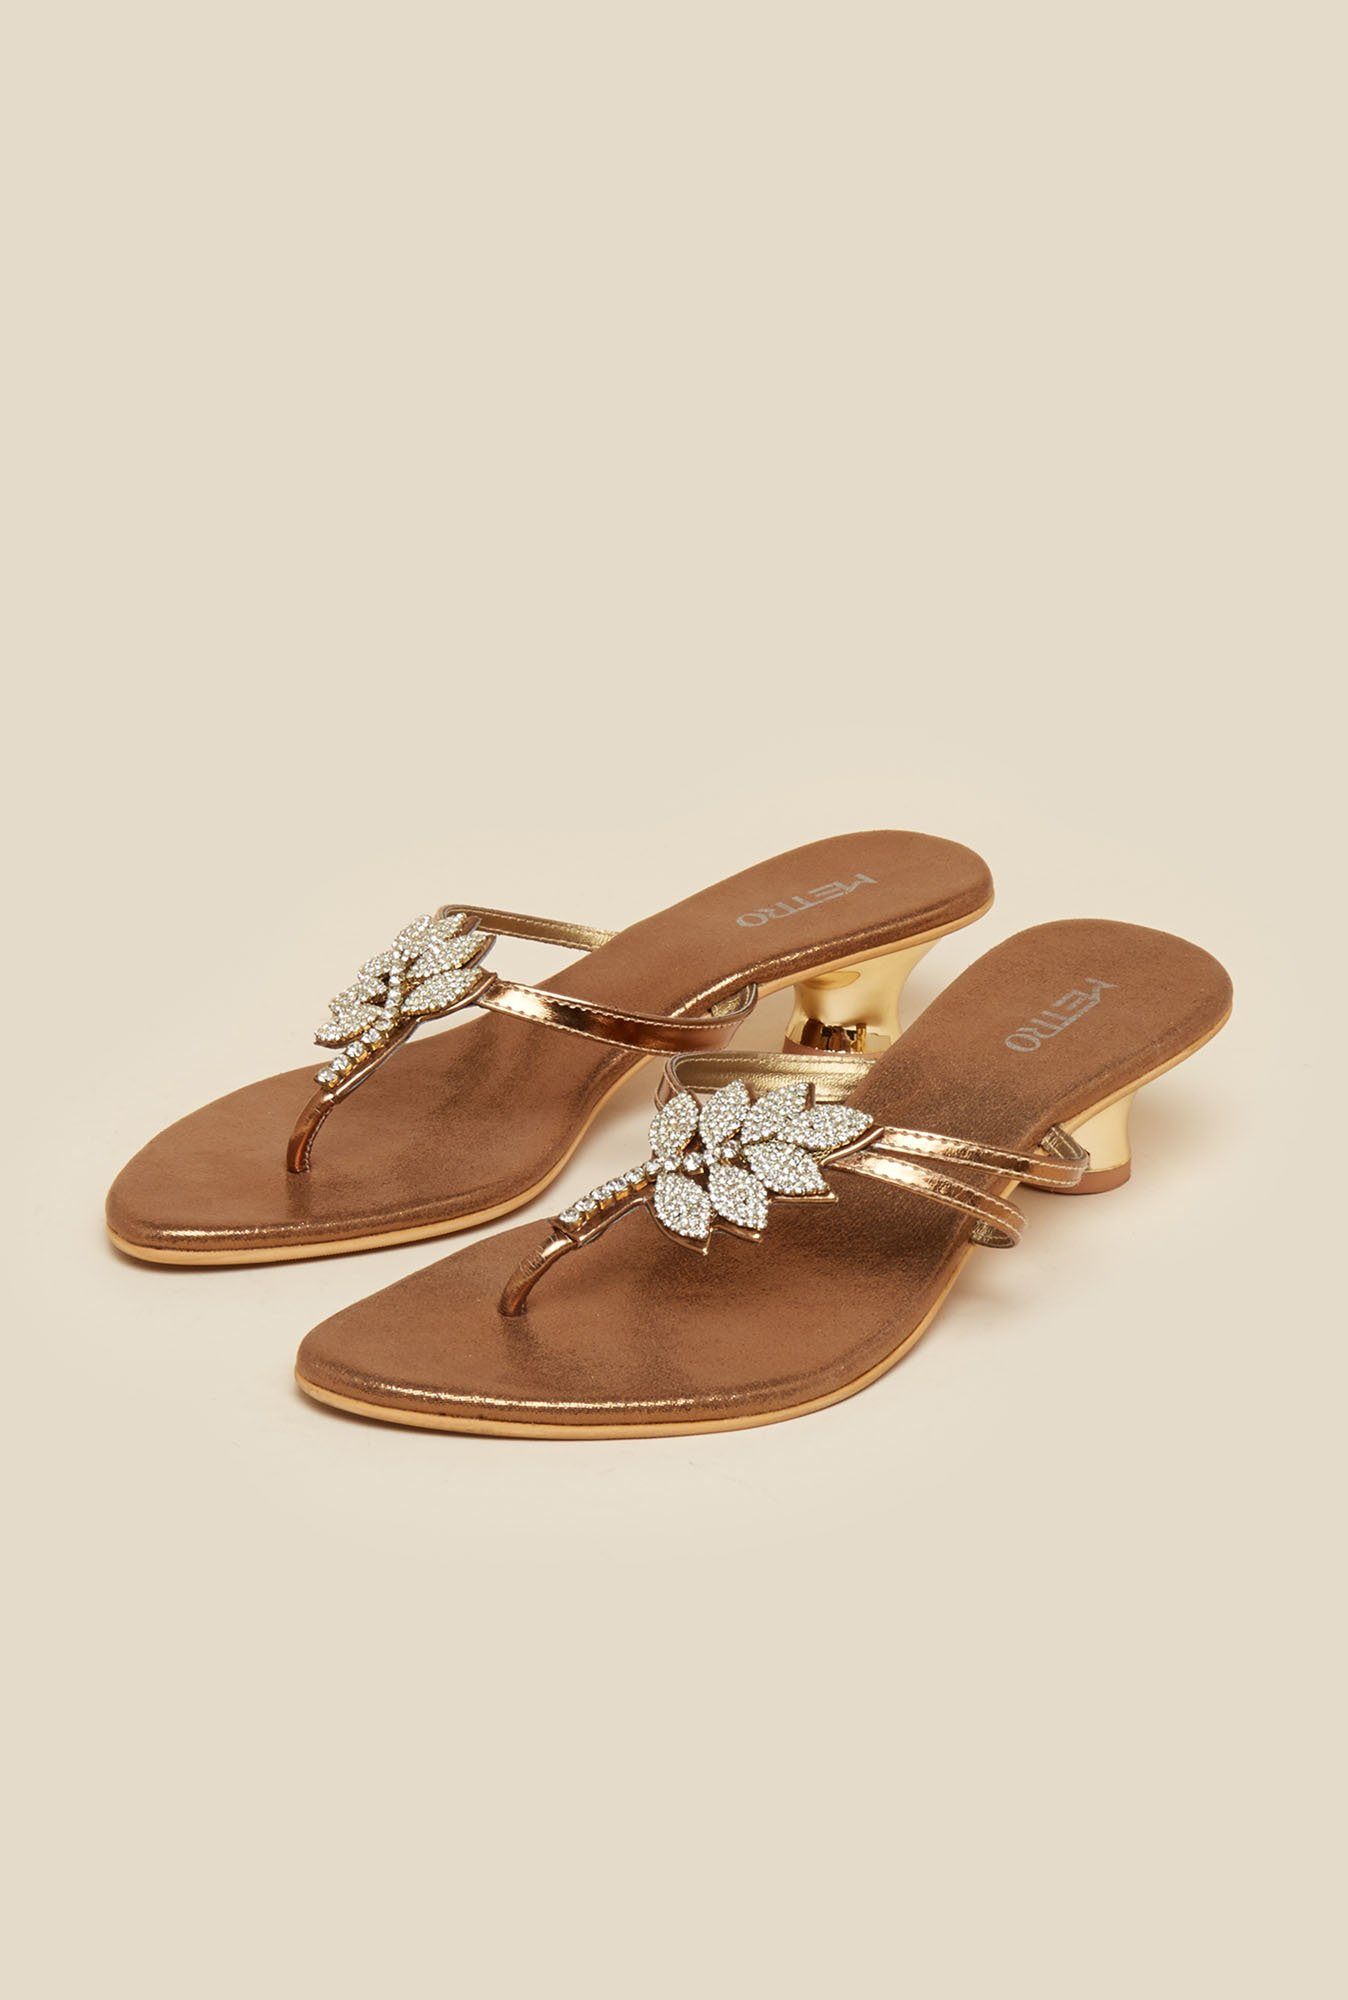 Metro Antique Gold Leaf Design Sandals